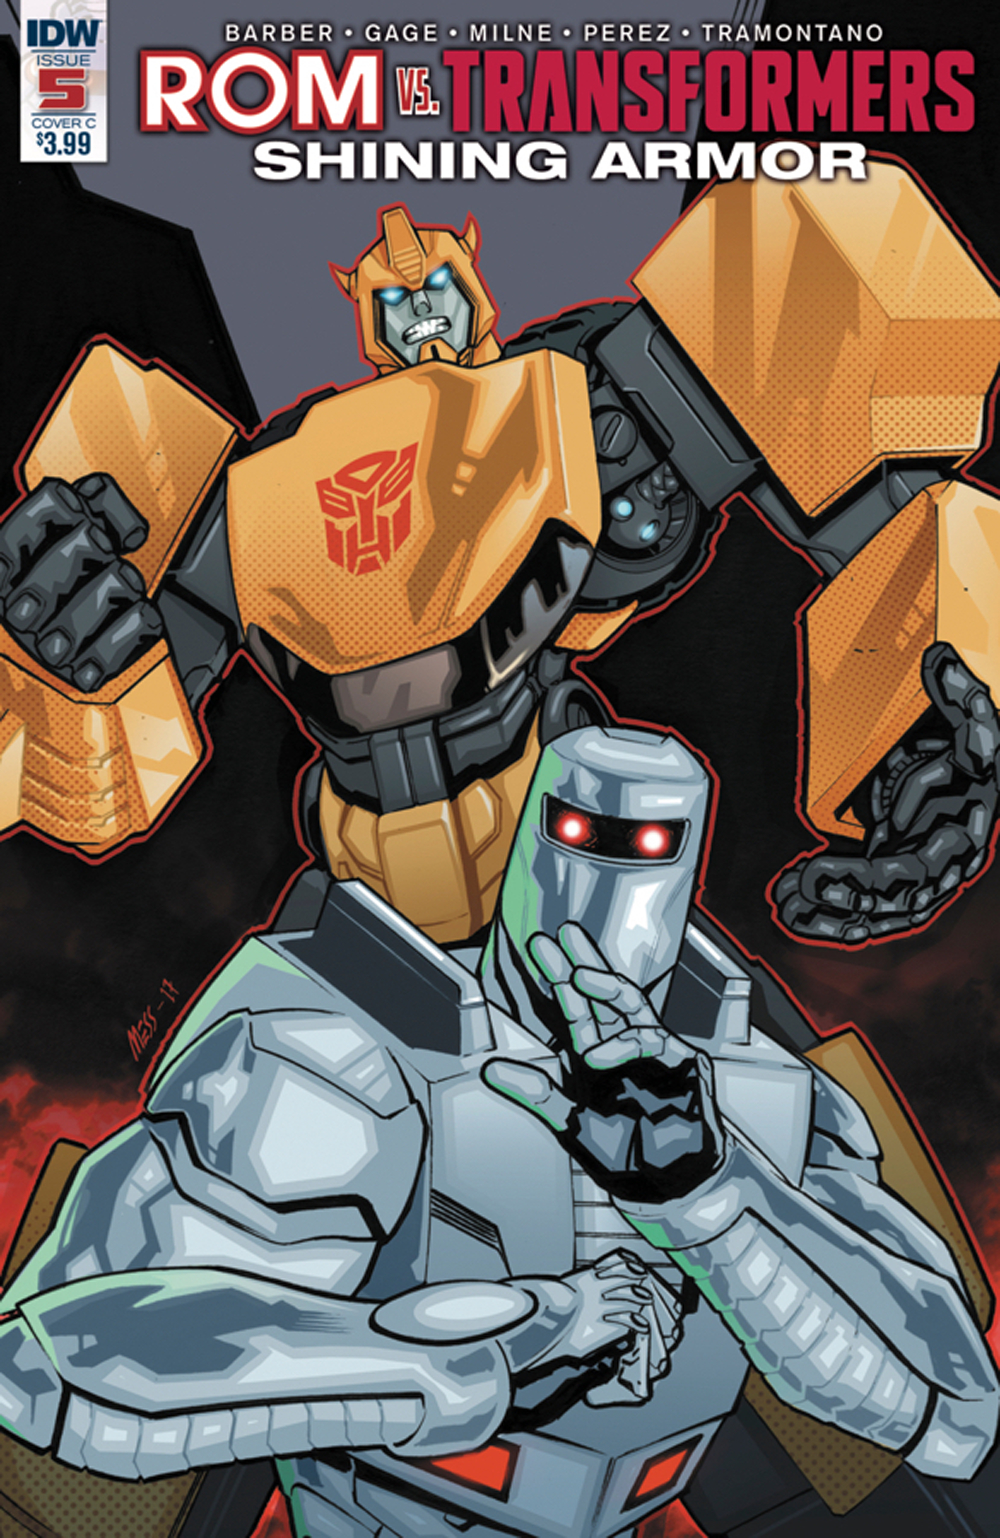 ROM VS TRANSFORMERS SHINING ARMOR #5 CVR C MESSINA